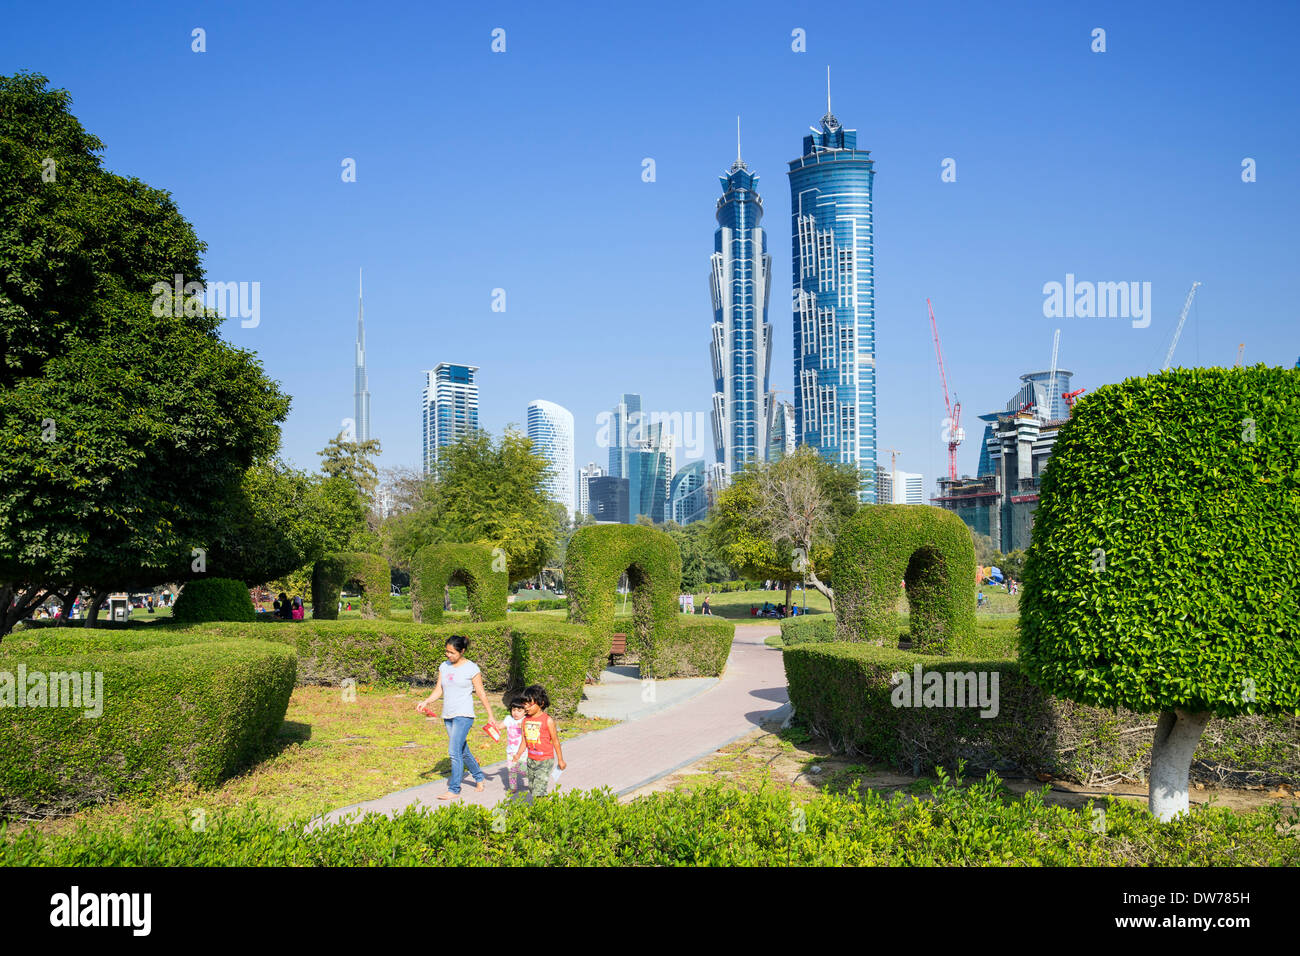 Maze garden and skyline of city from Al Safa Park in Dubai United Arab Emirates - Stock Image